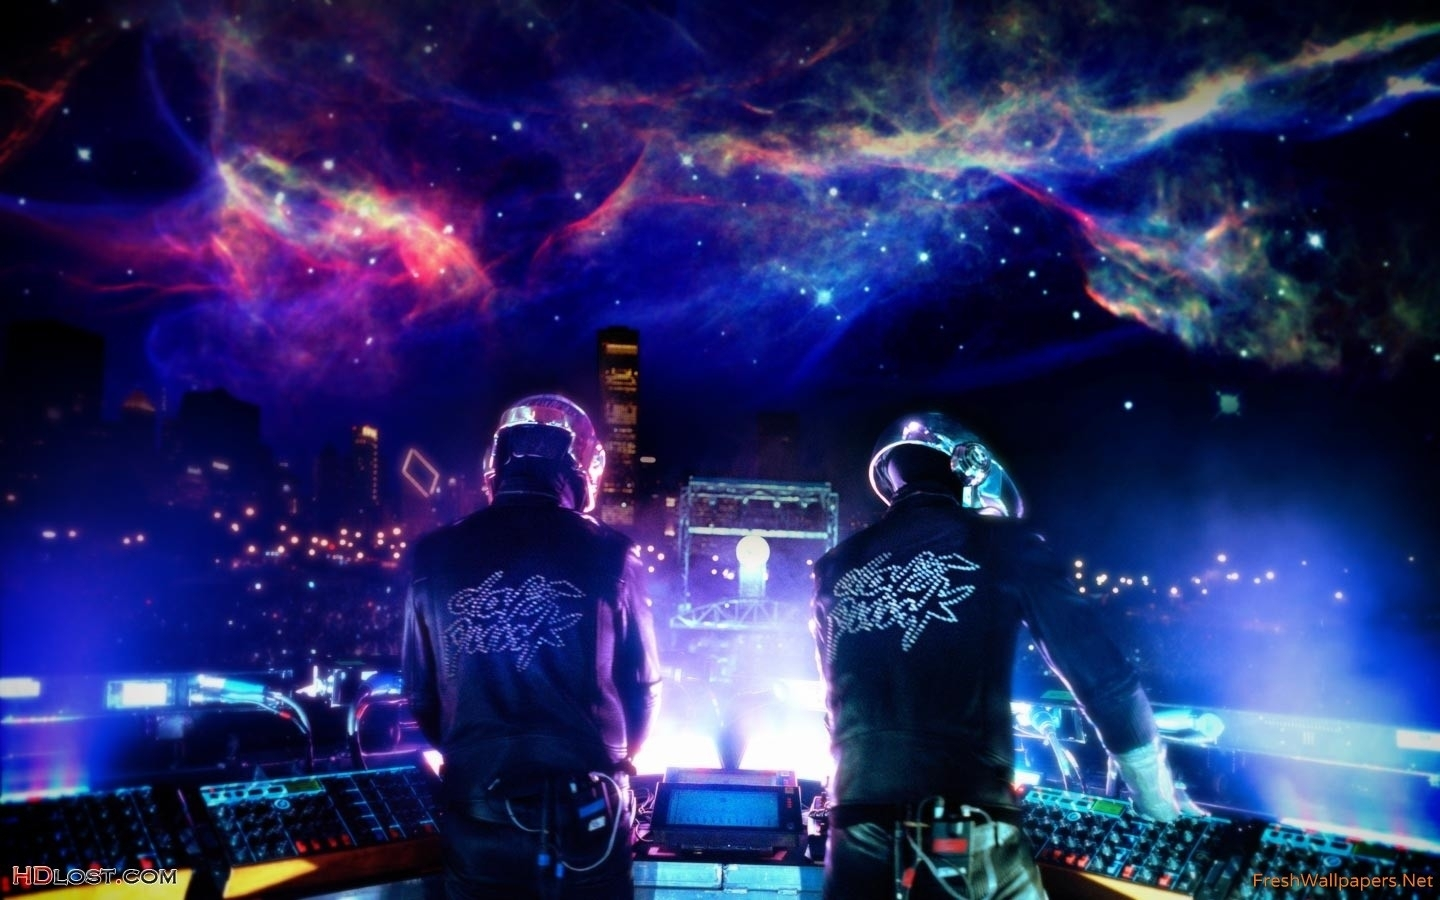 electronic music wallpapers | freshwallpapers